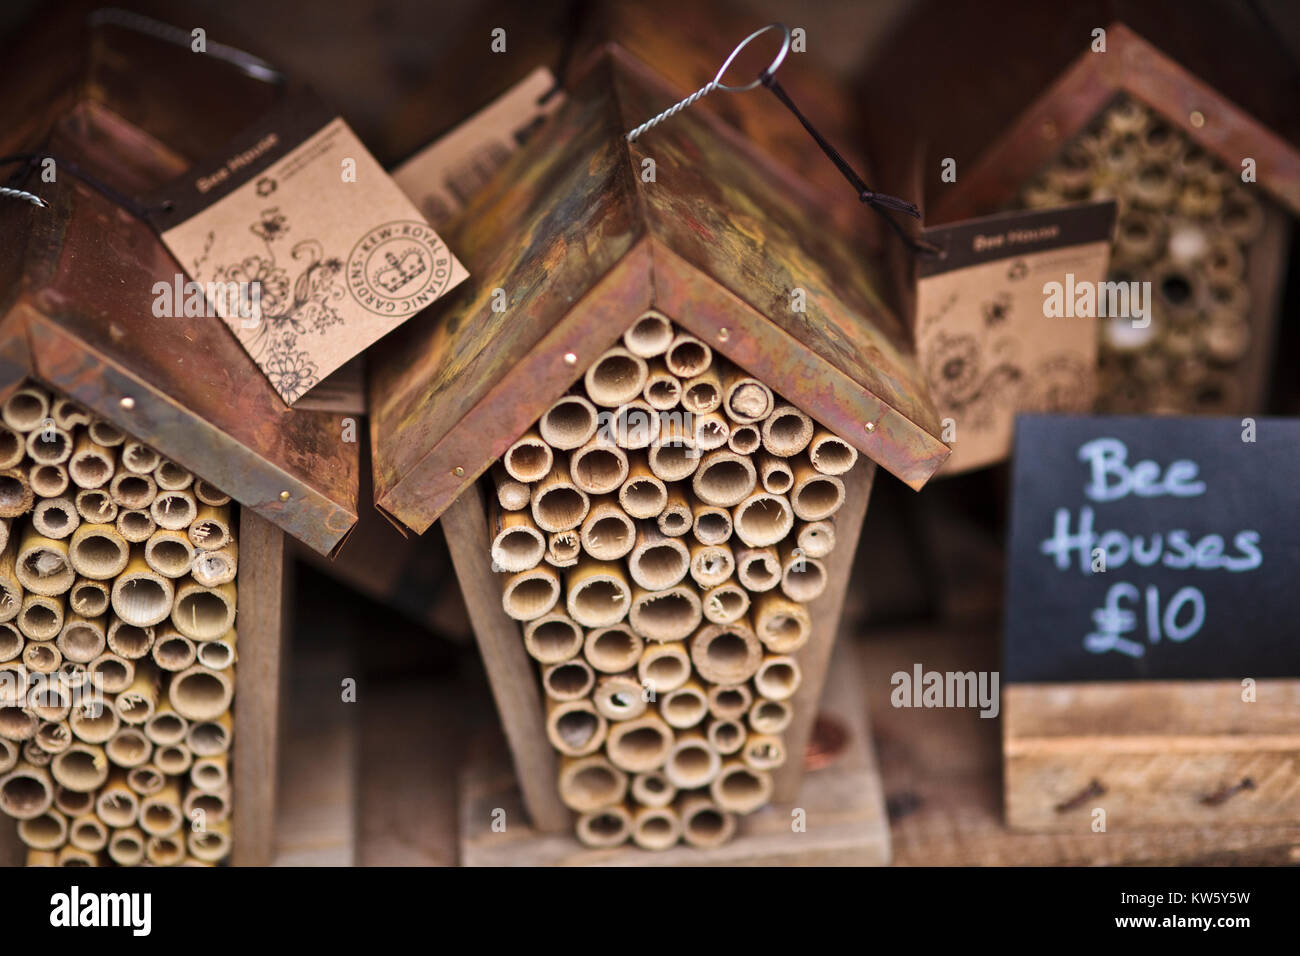 New garden insect shelters for sale at a market stall, UK - Stock Image